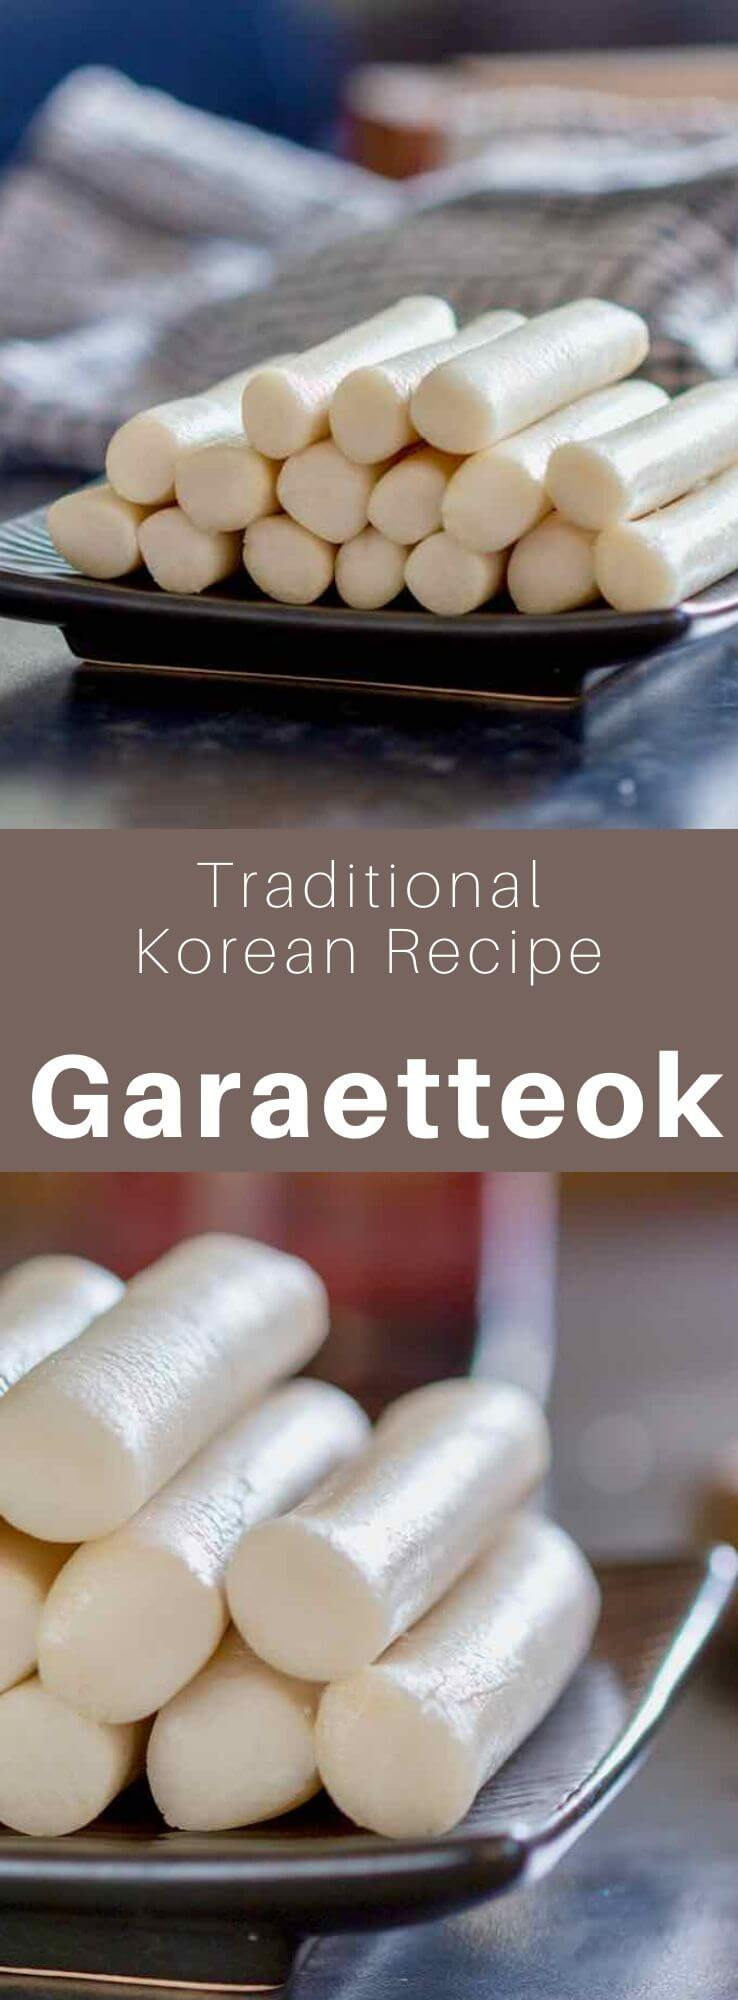 Garaetteok Traditional Korean Recipe 196 Flavors